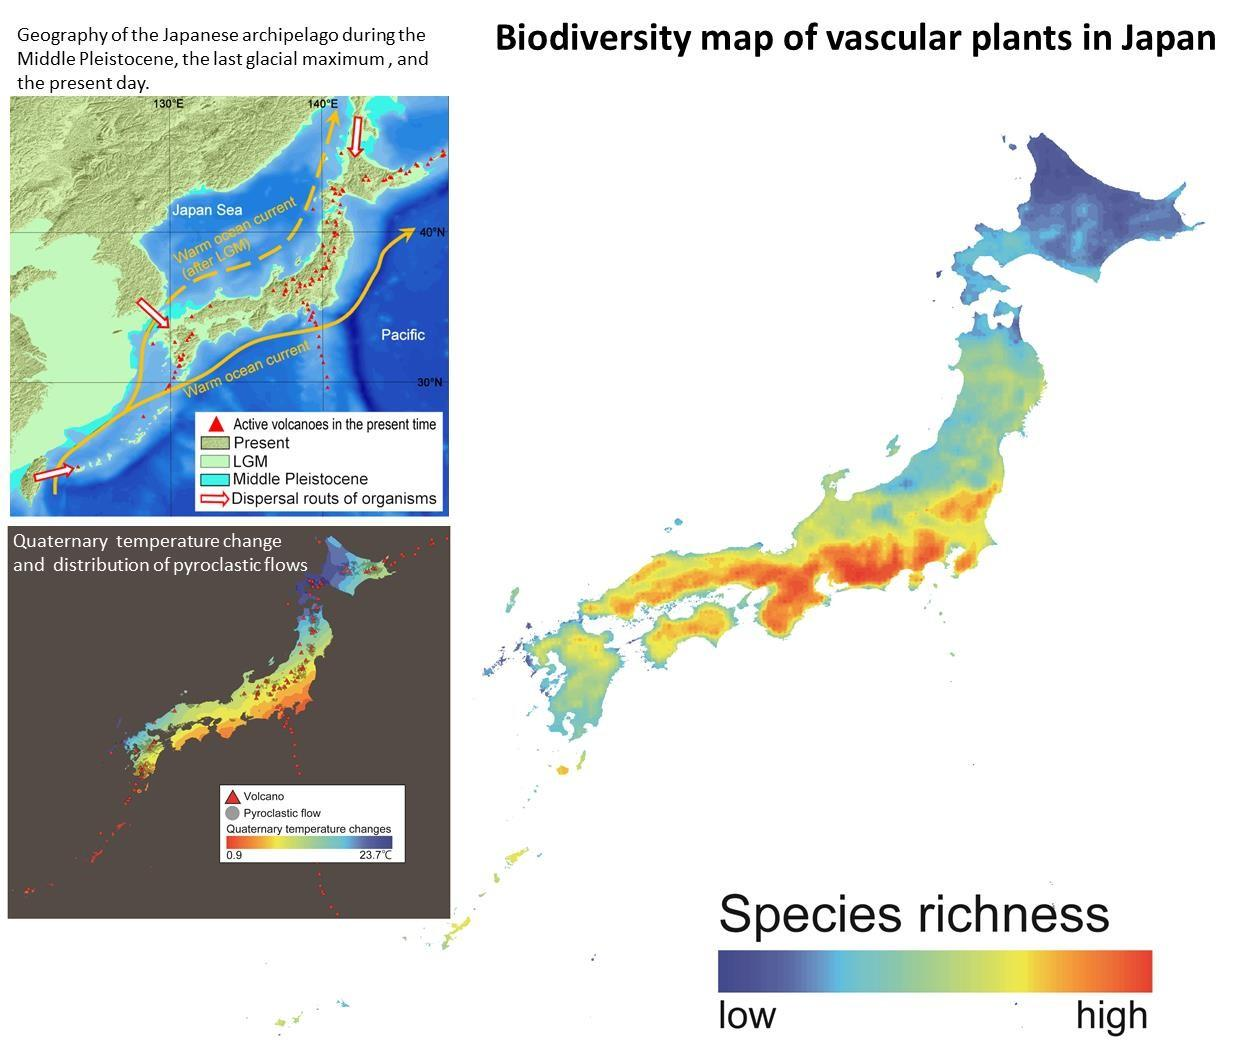 what drives plant richness and endemicity in east asian islands